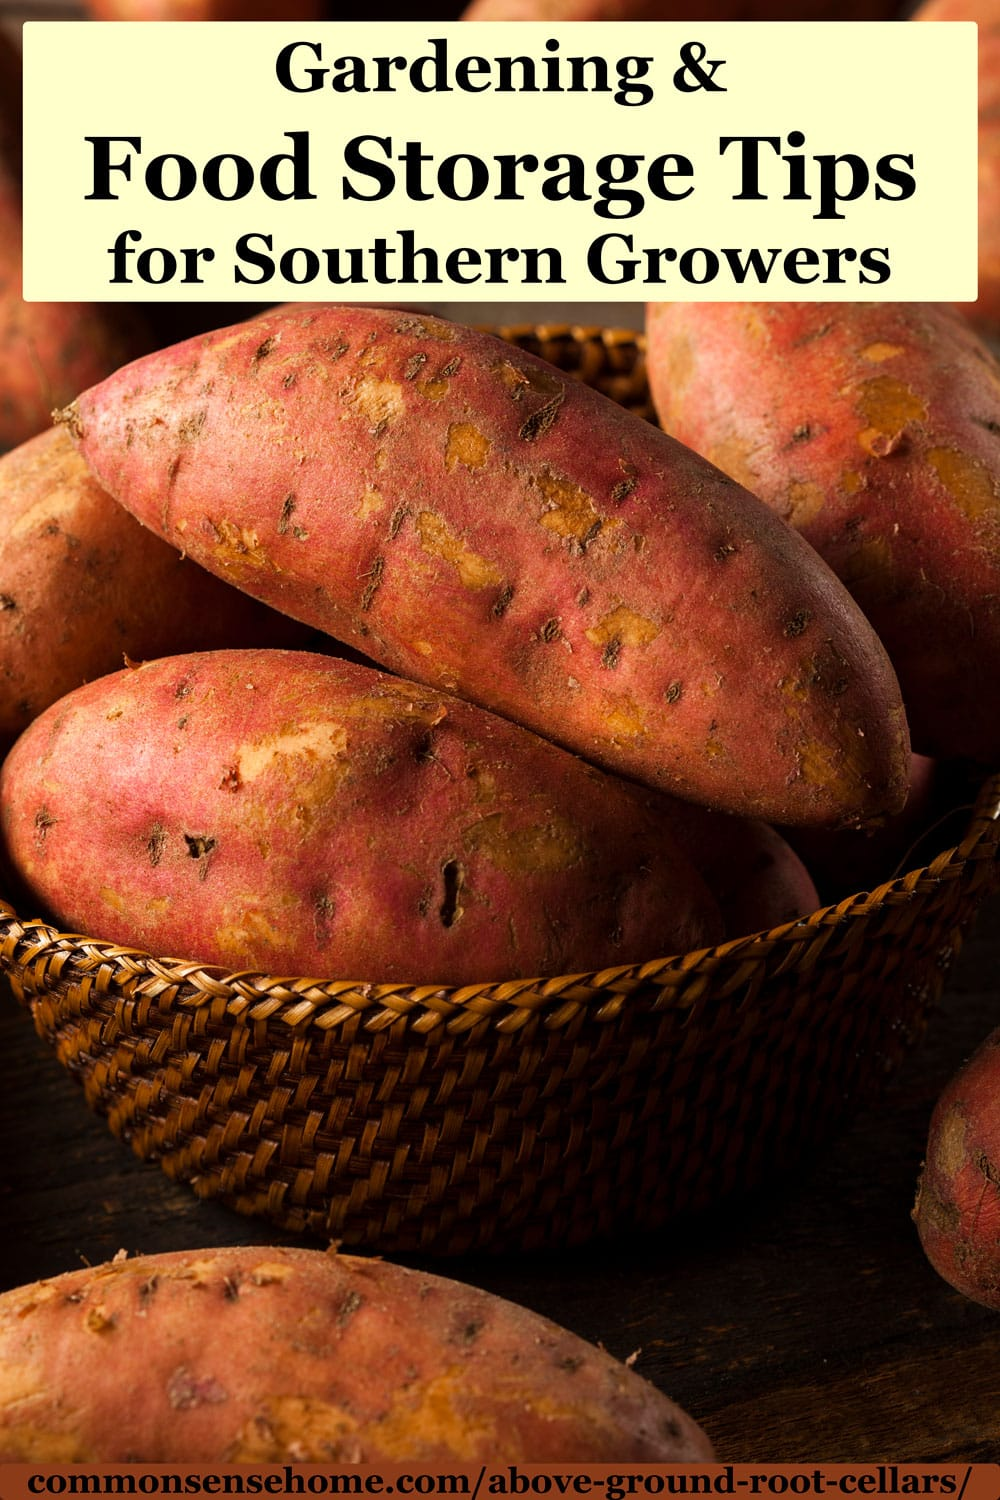 Gardening and Food Storage Tips for Southern Growers